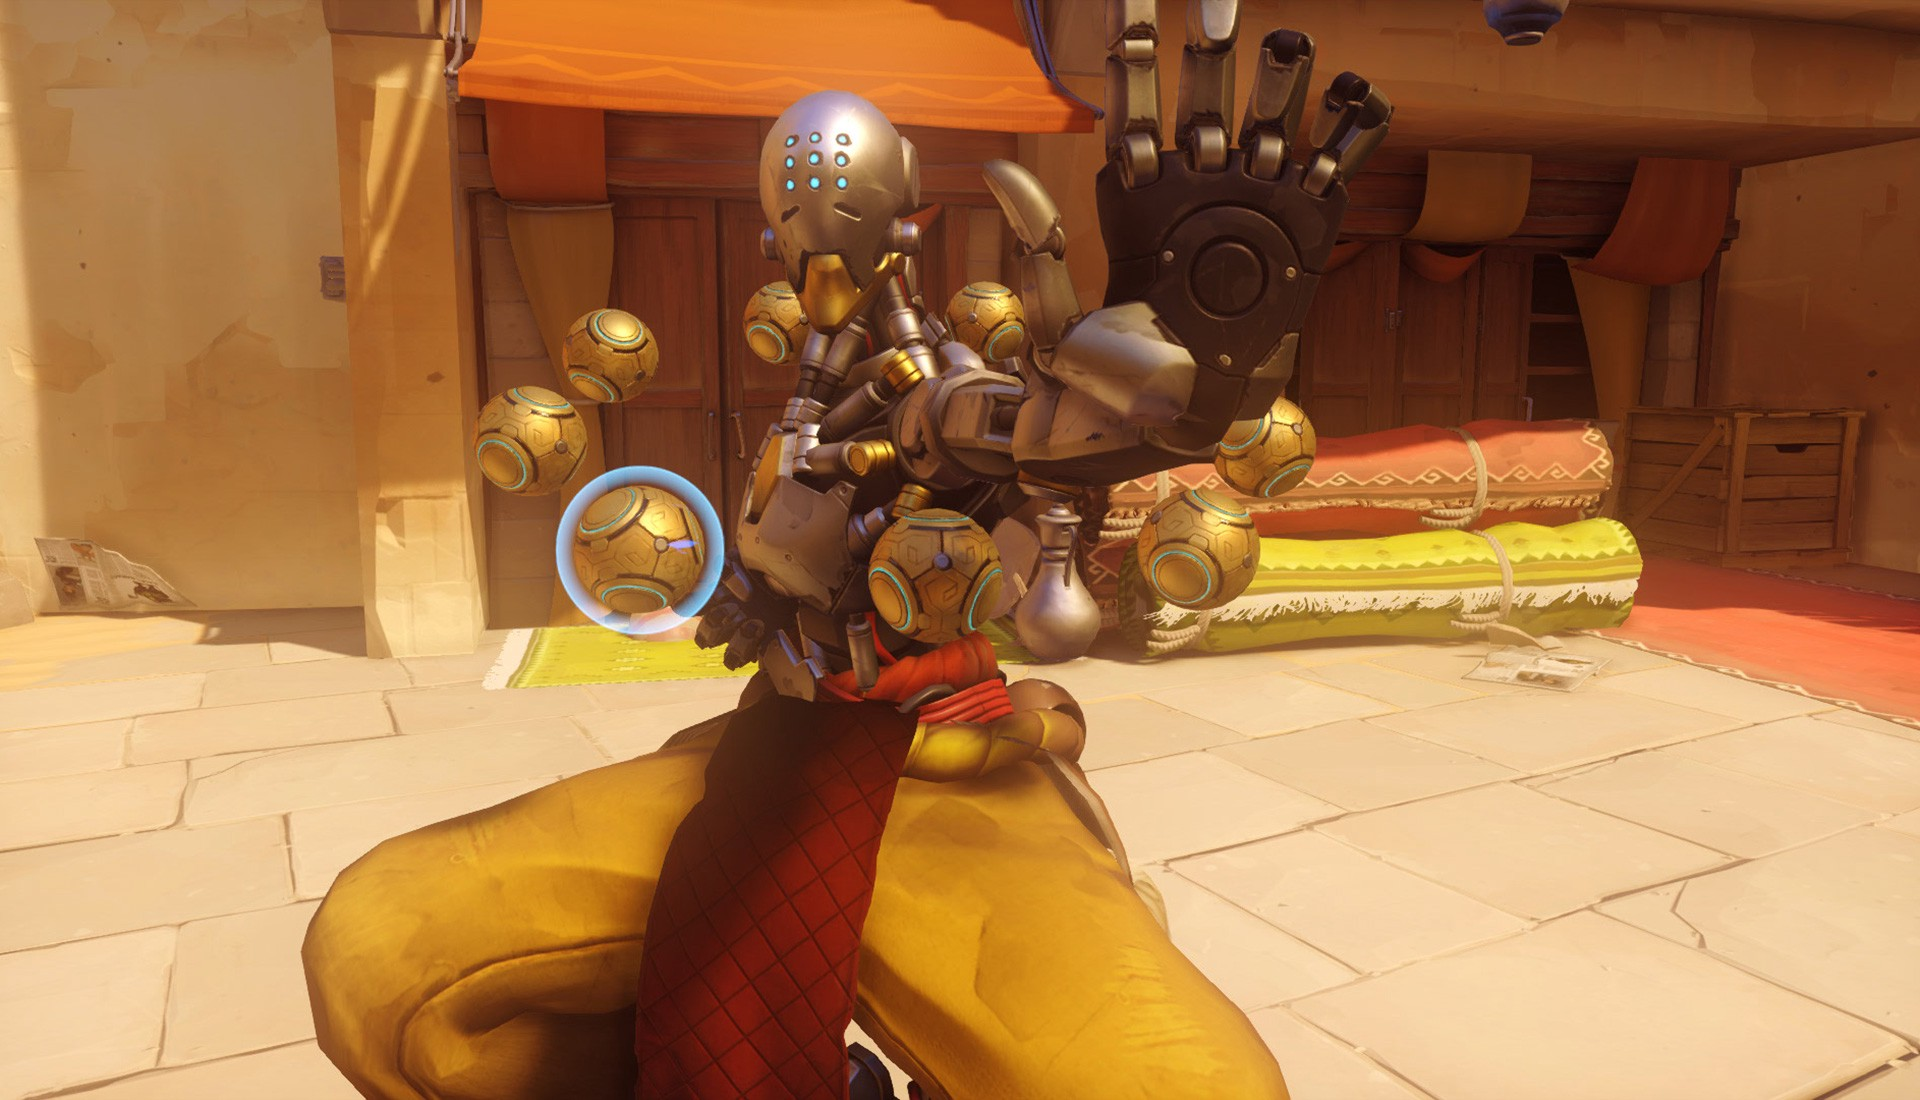 Overwatch: Zenyatta Receives Quality of Life Change on PTR